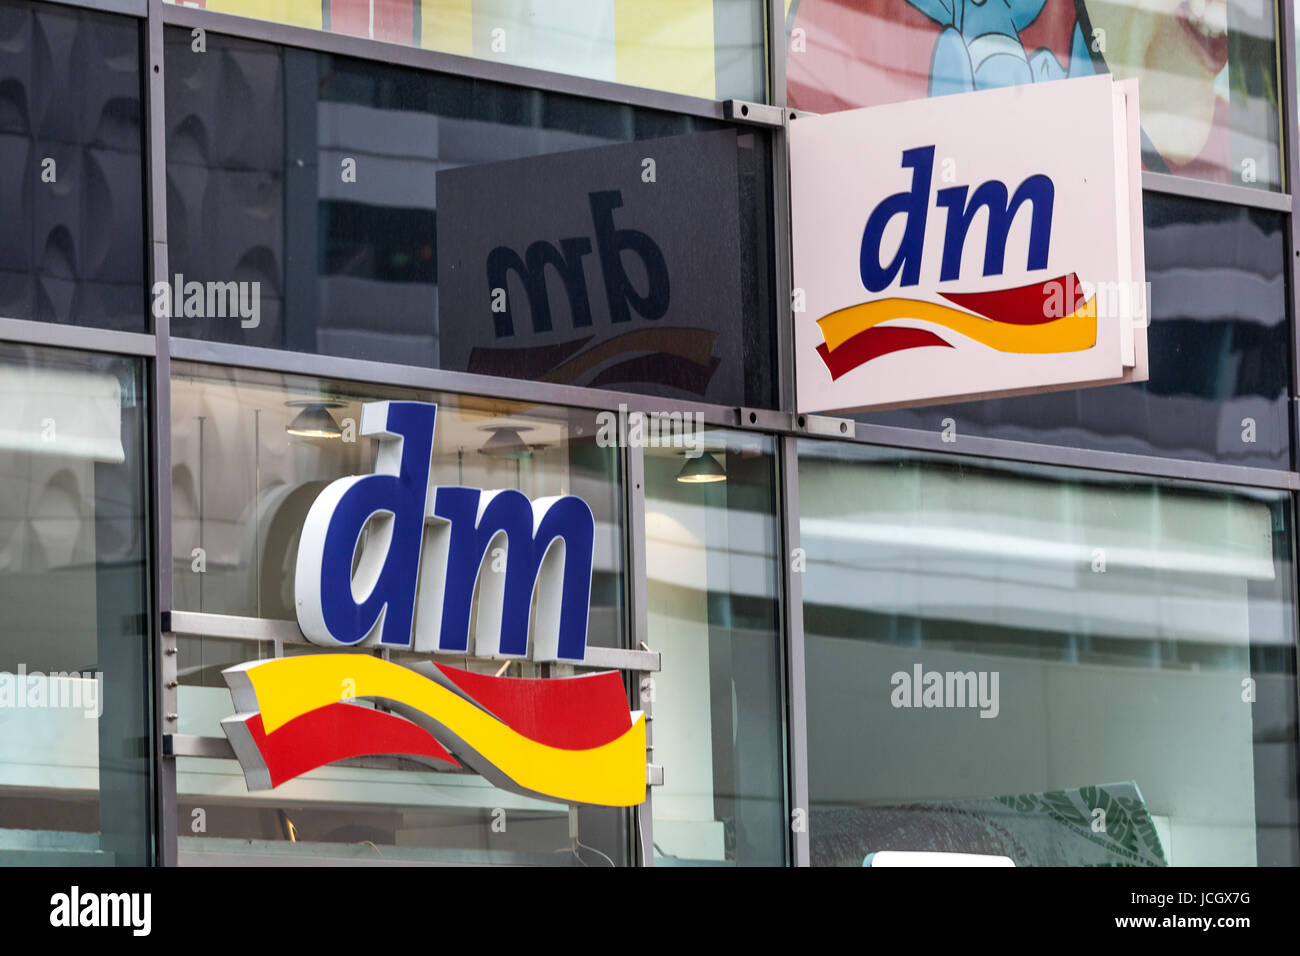 DM logo sign - Stock Image